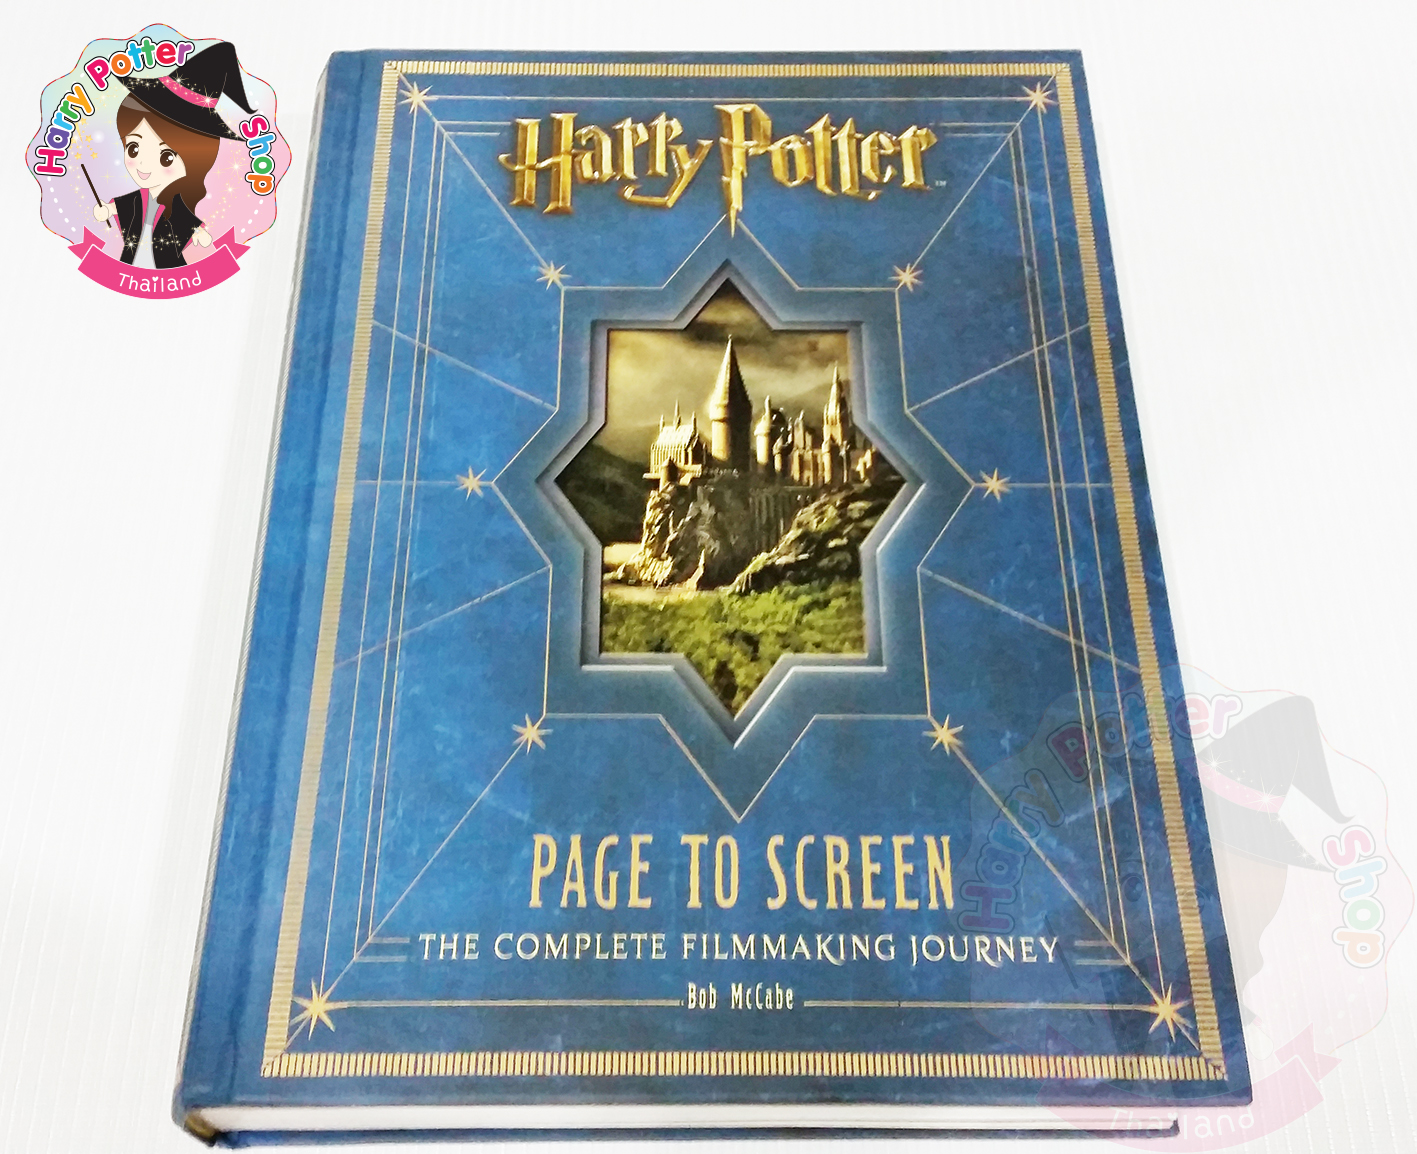 Harry Potter Page to Screen: The Complete Filmmaking Journey.